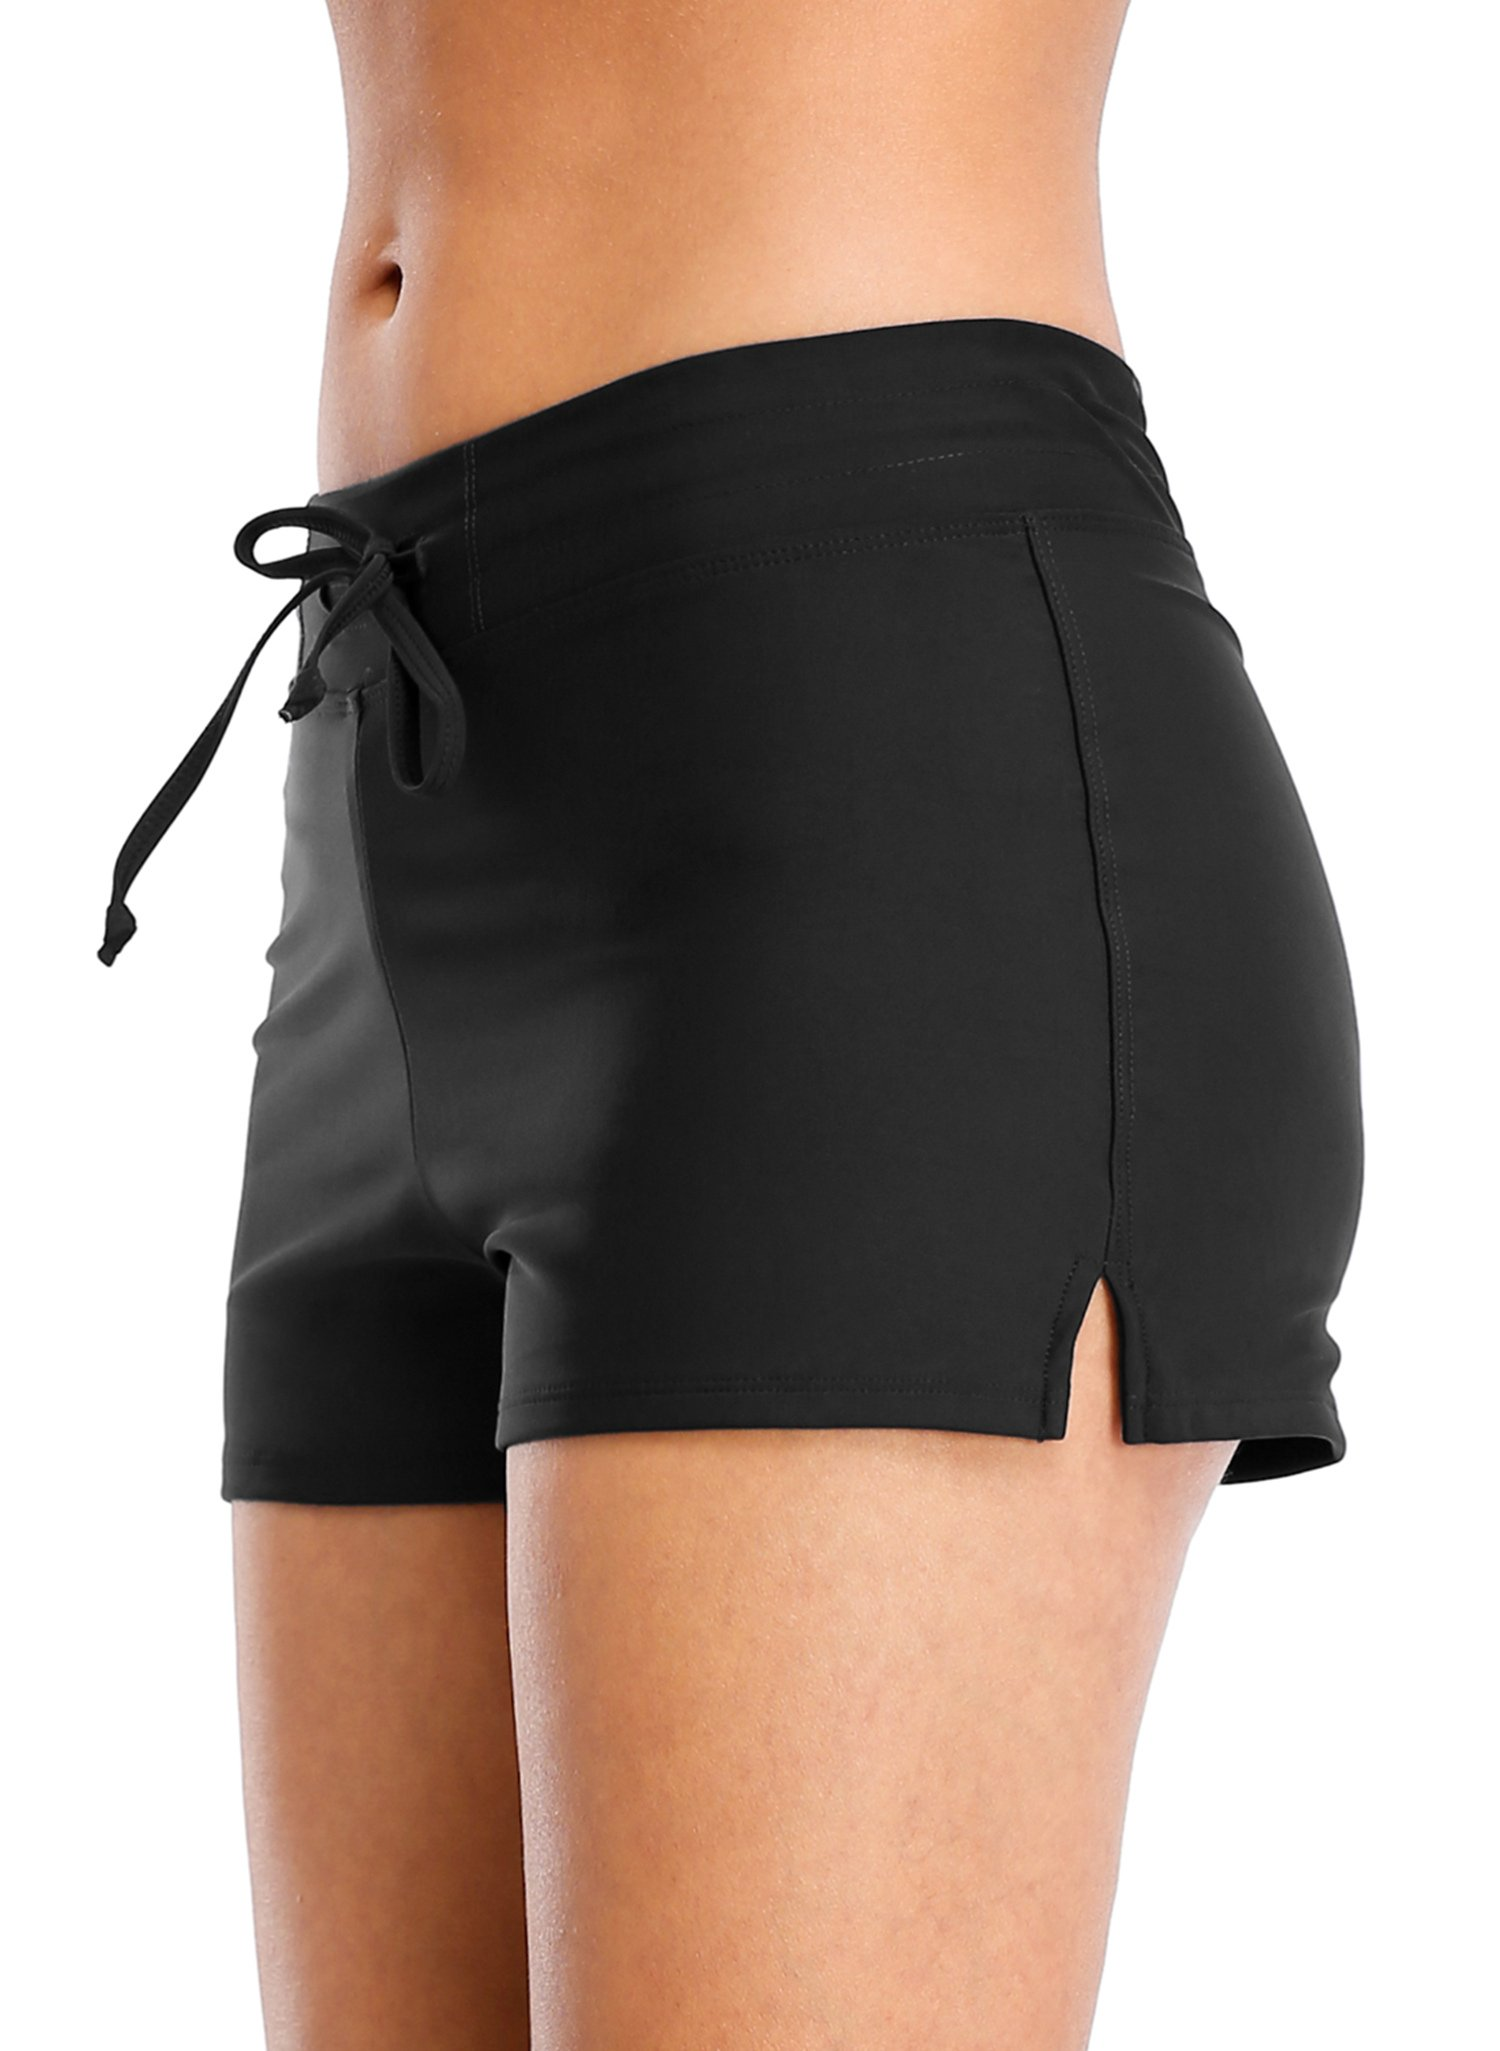 Vegatos Womens Solid Boardshorts Swimming Shorts Swim Bottoms Surfing Boyshorts Black by Vegatos (Image #4)